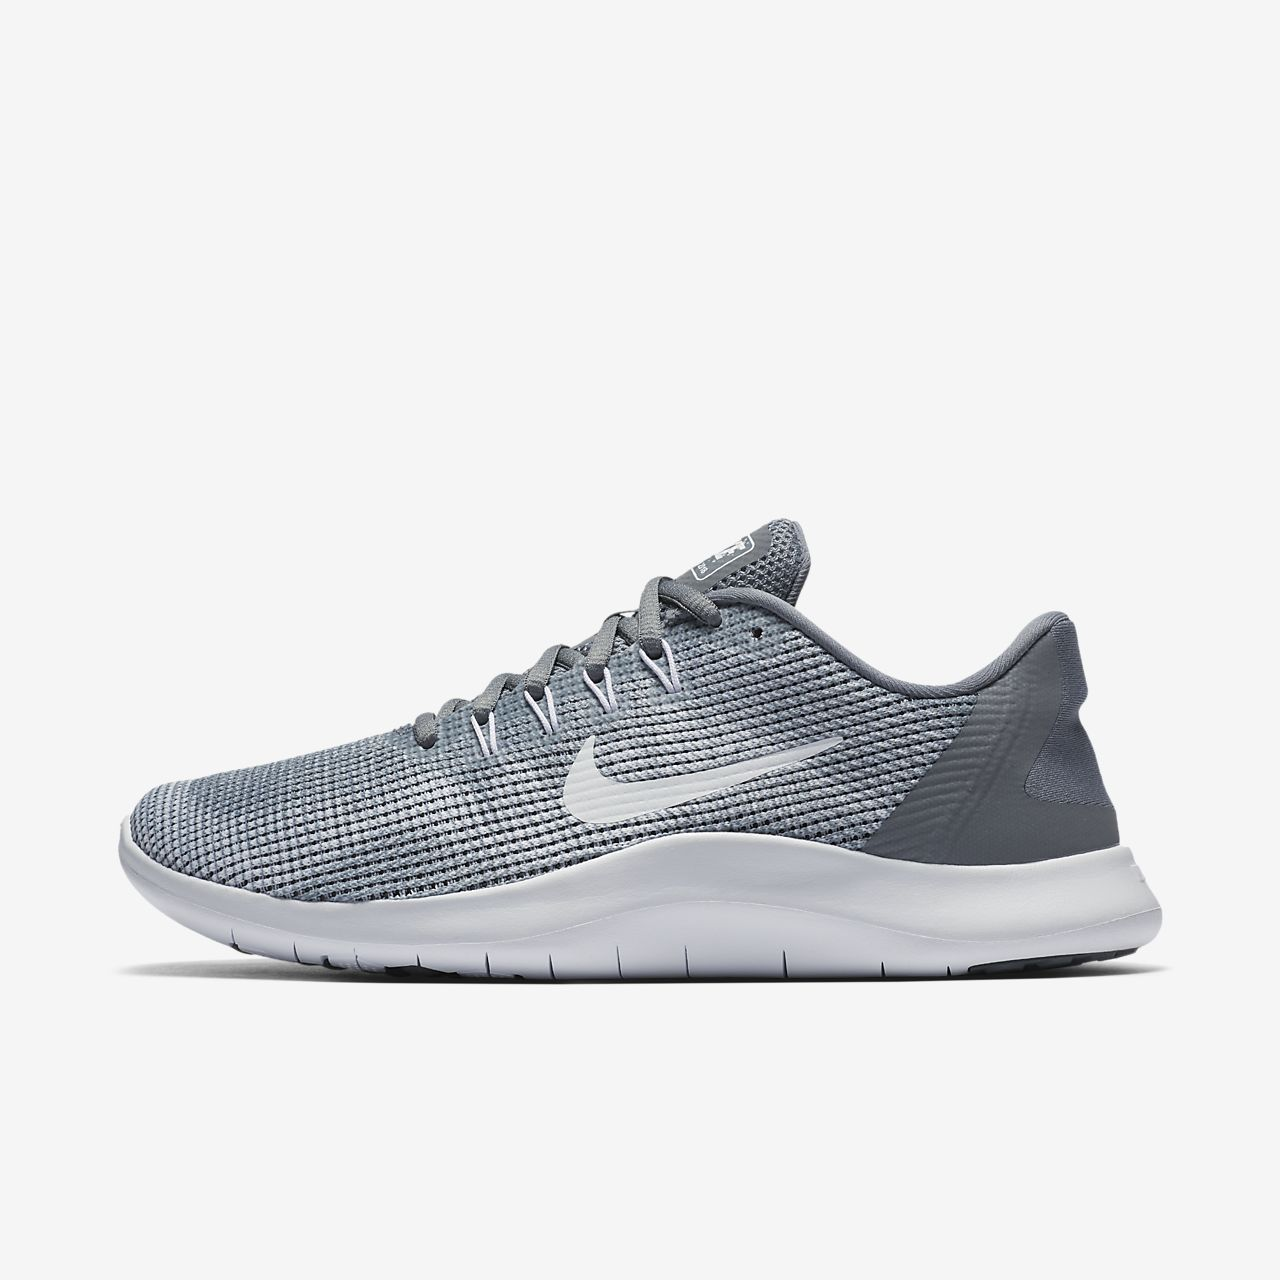 buy online 1d8eb a14d4 ... Nike Flex RN 2018 Womens Running Shoe